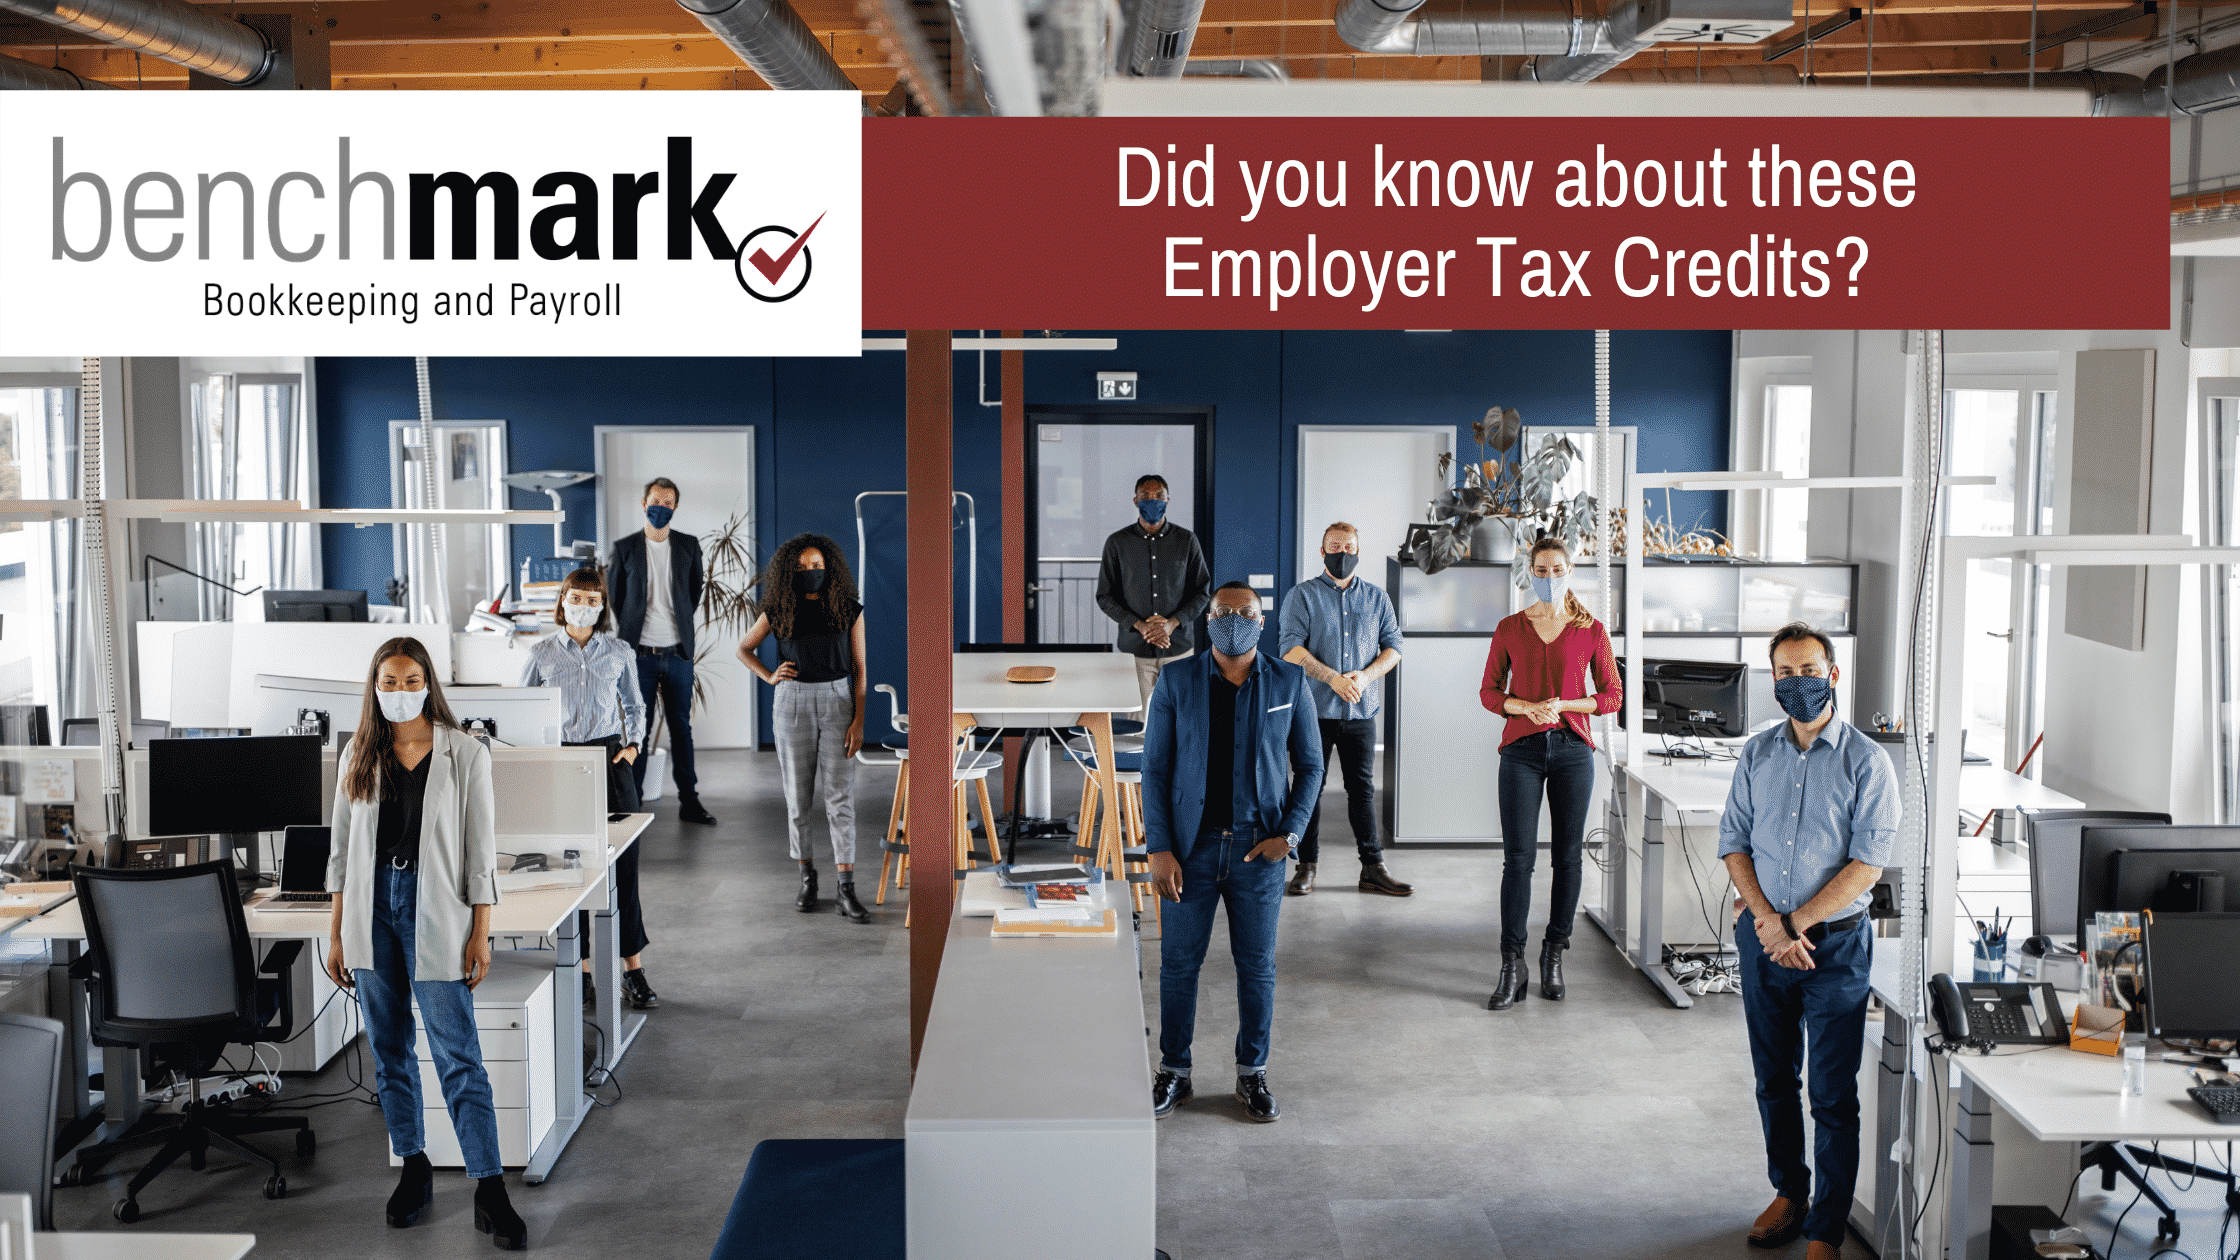 BenchmarkBookkeeping and Payroll Employer Tax Credits